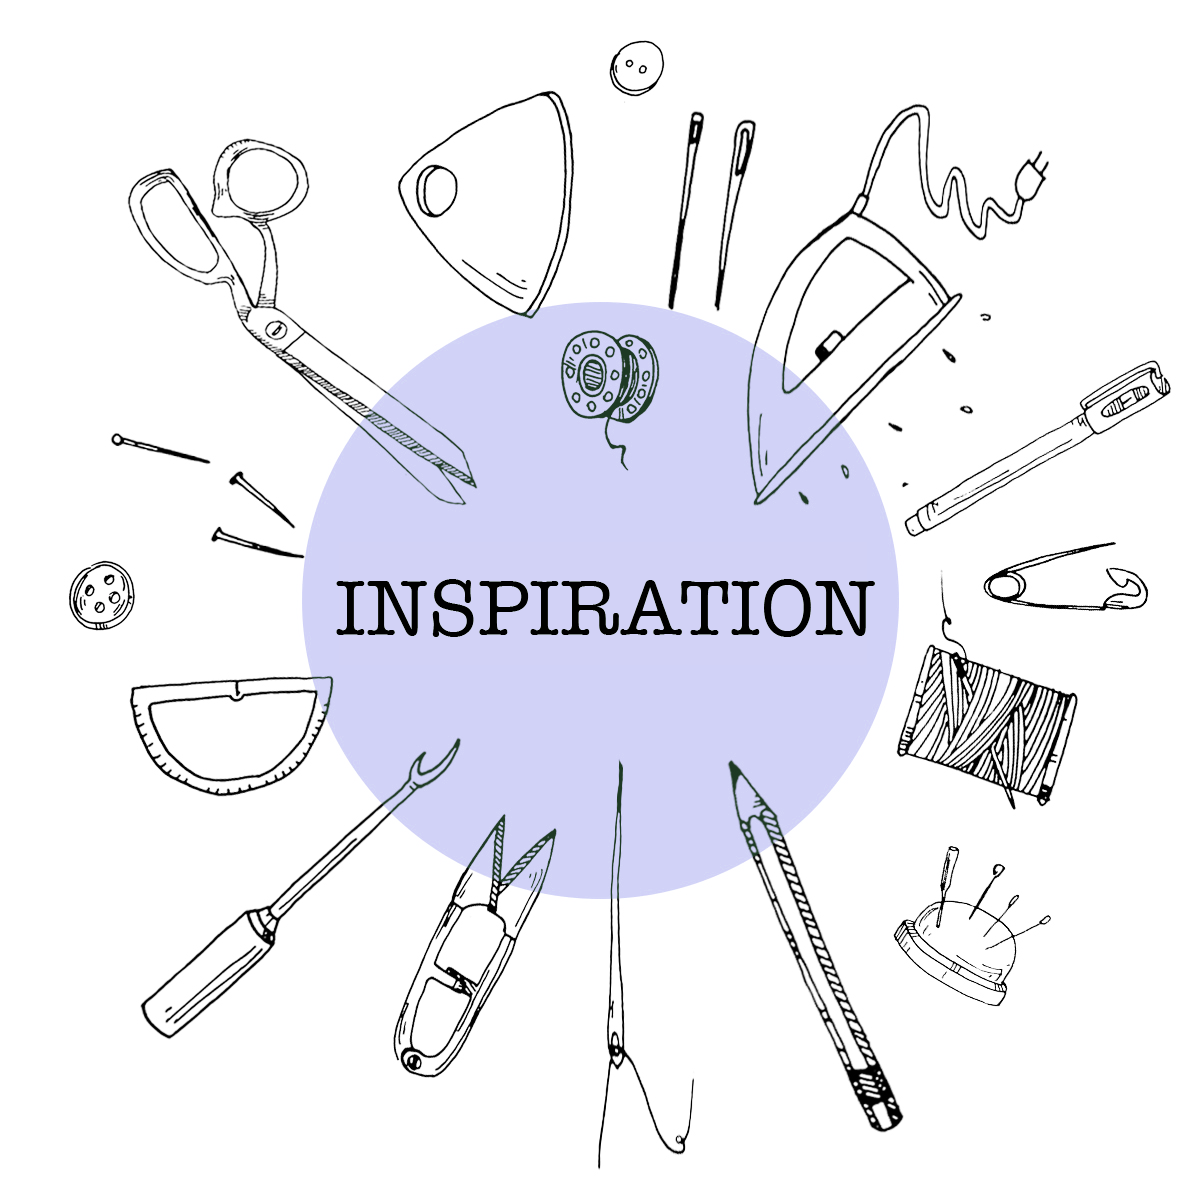 How to find inspirations